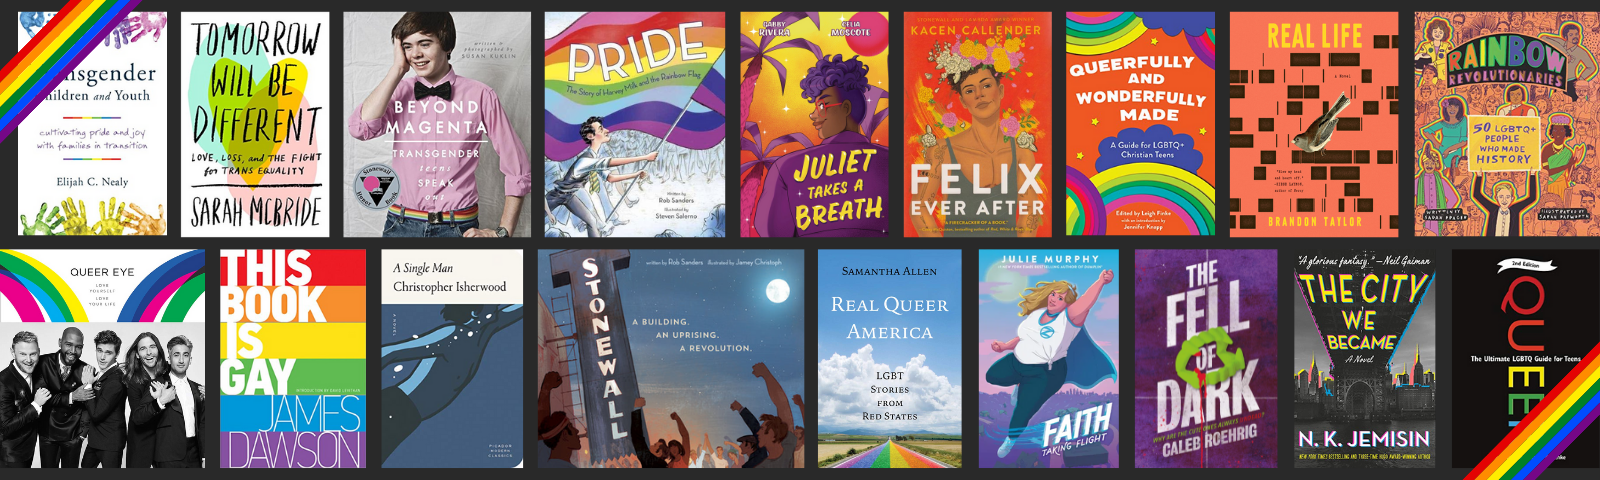 A rainbow banner with 18 book covers featuring LGBTQ+ authors and characters. keep reading for complete booklists.